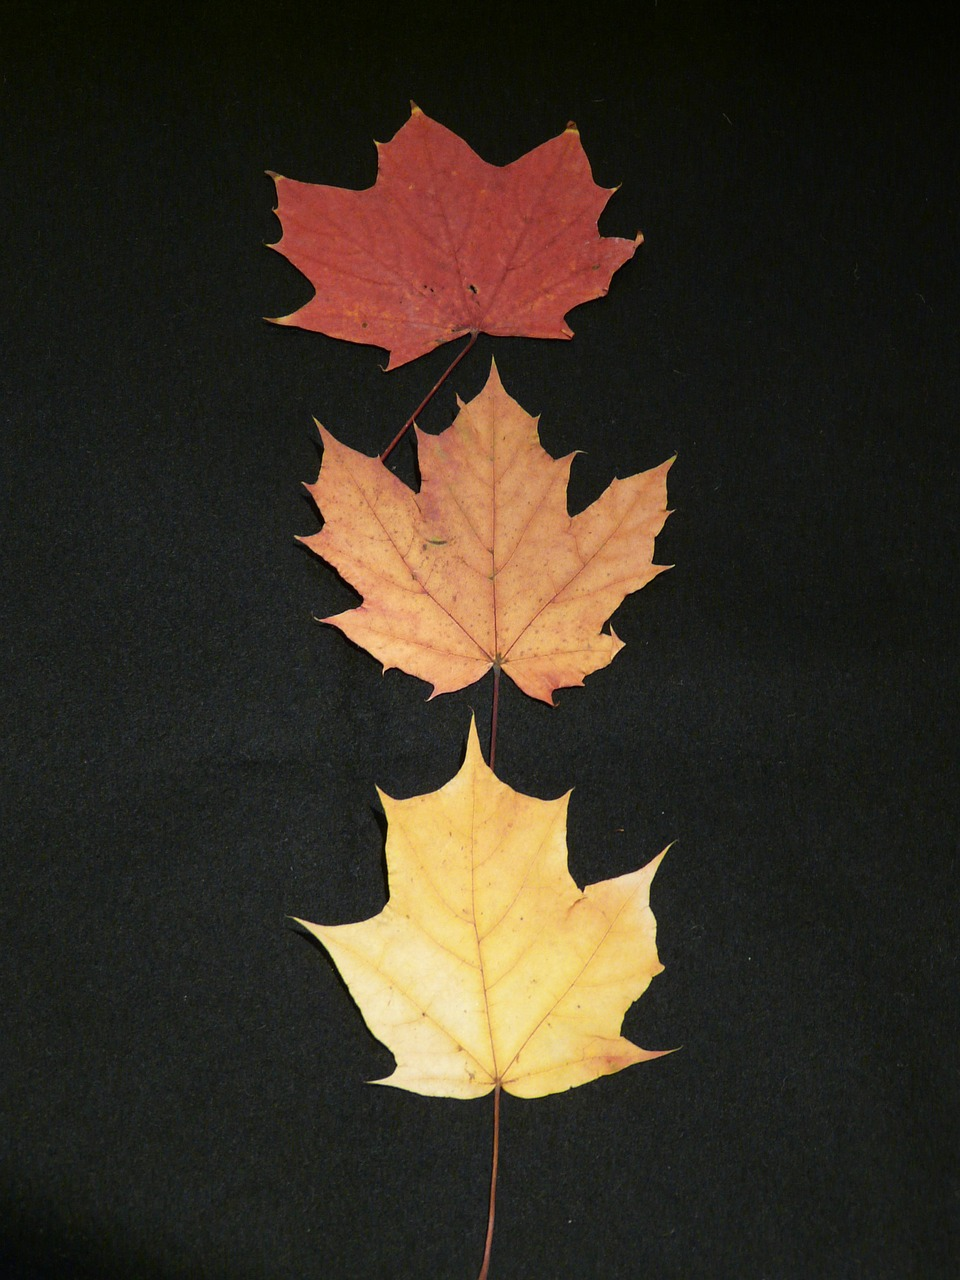 maple-leaves-63224_1280